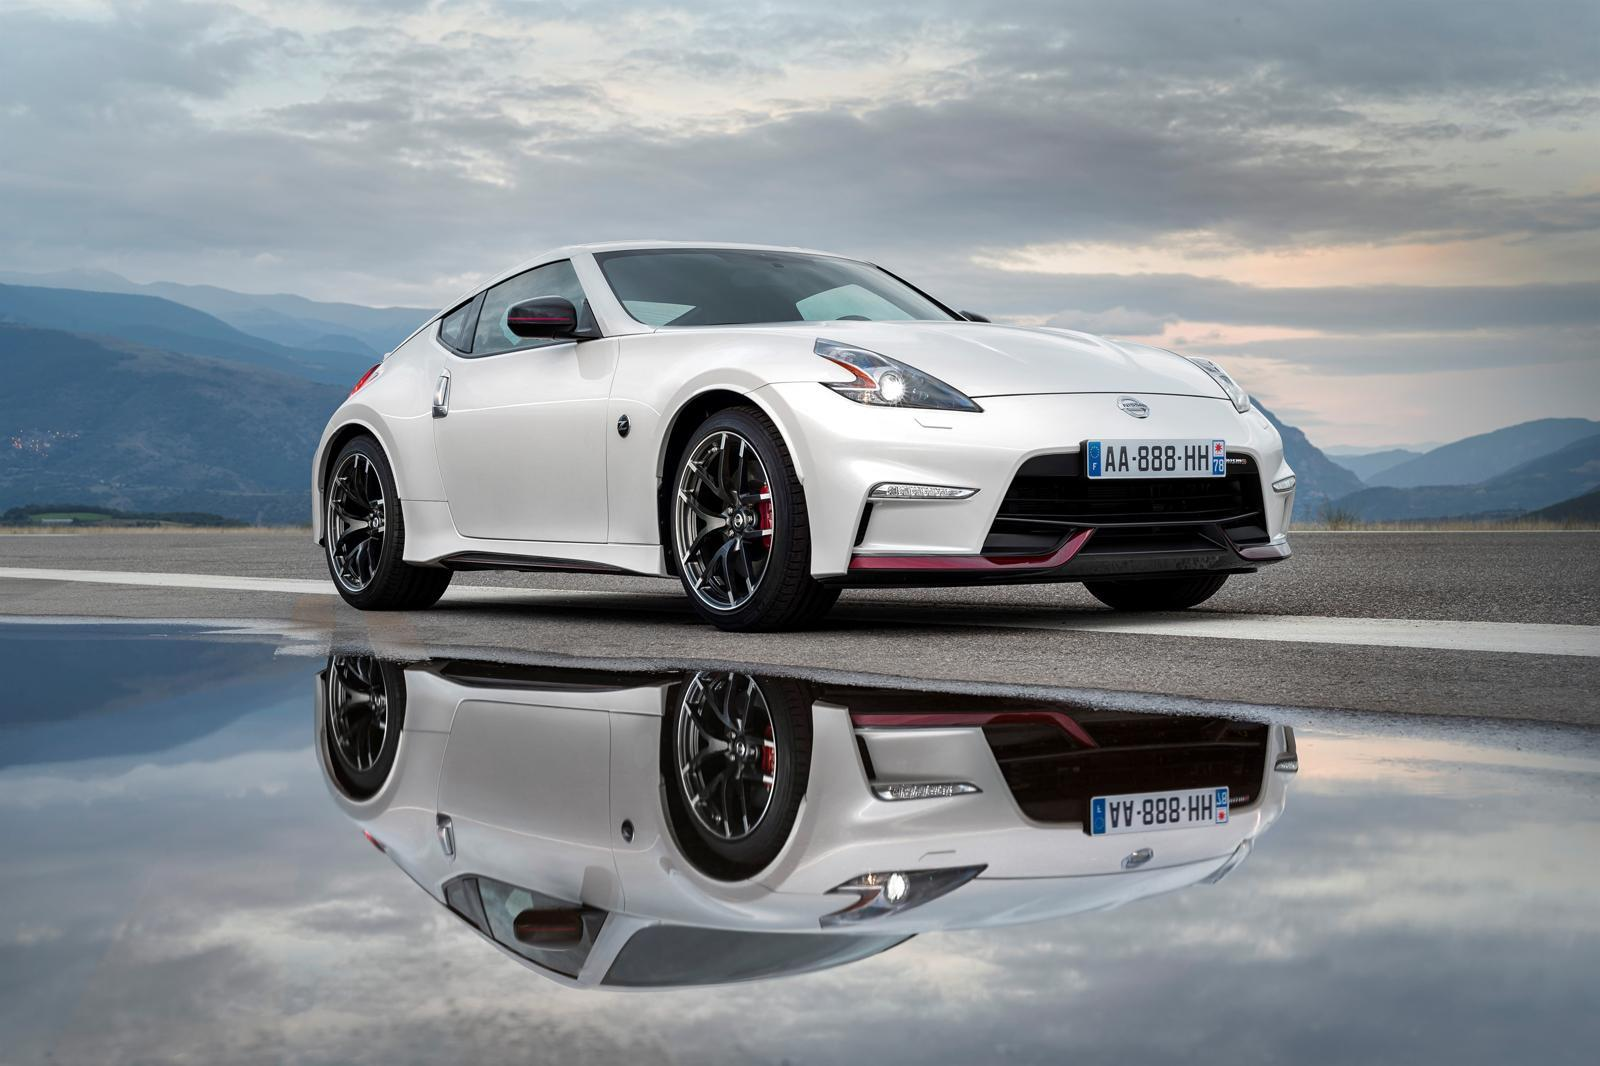 2013 370z wallpaper - photo #34